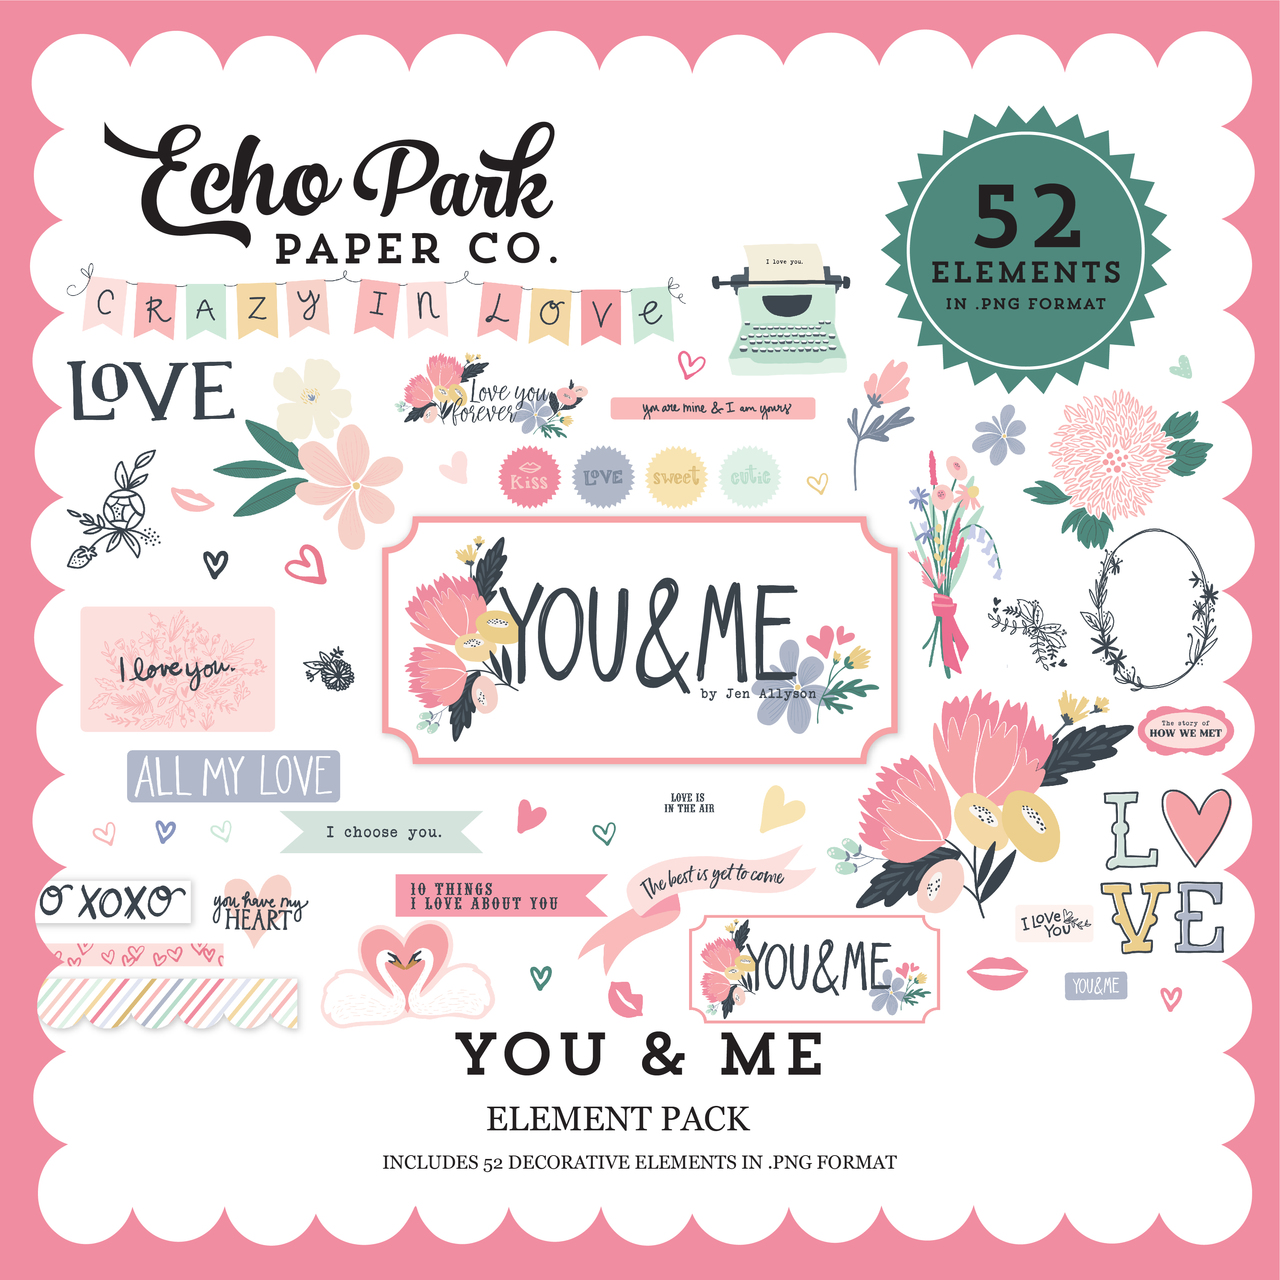 You & Me Element Pack